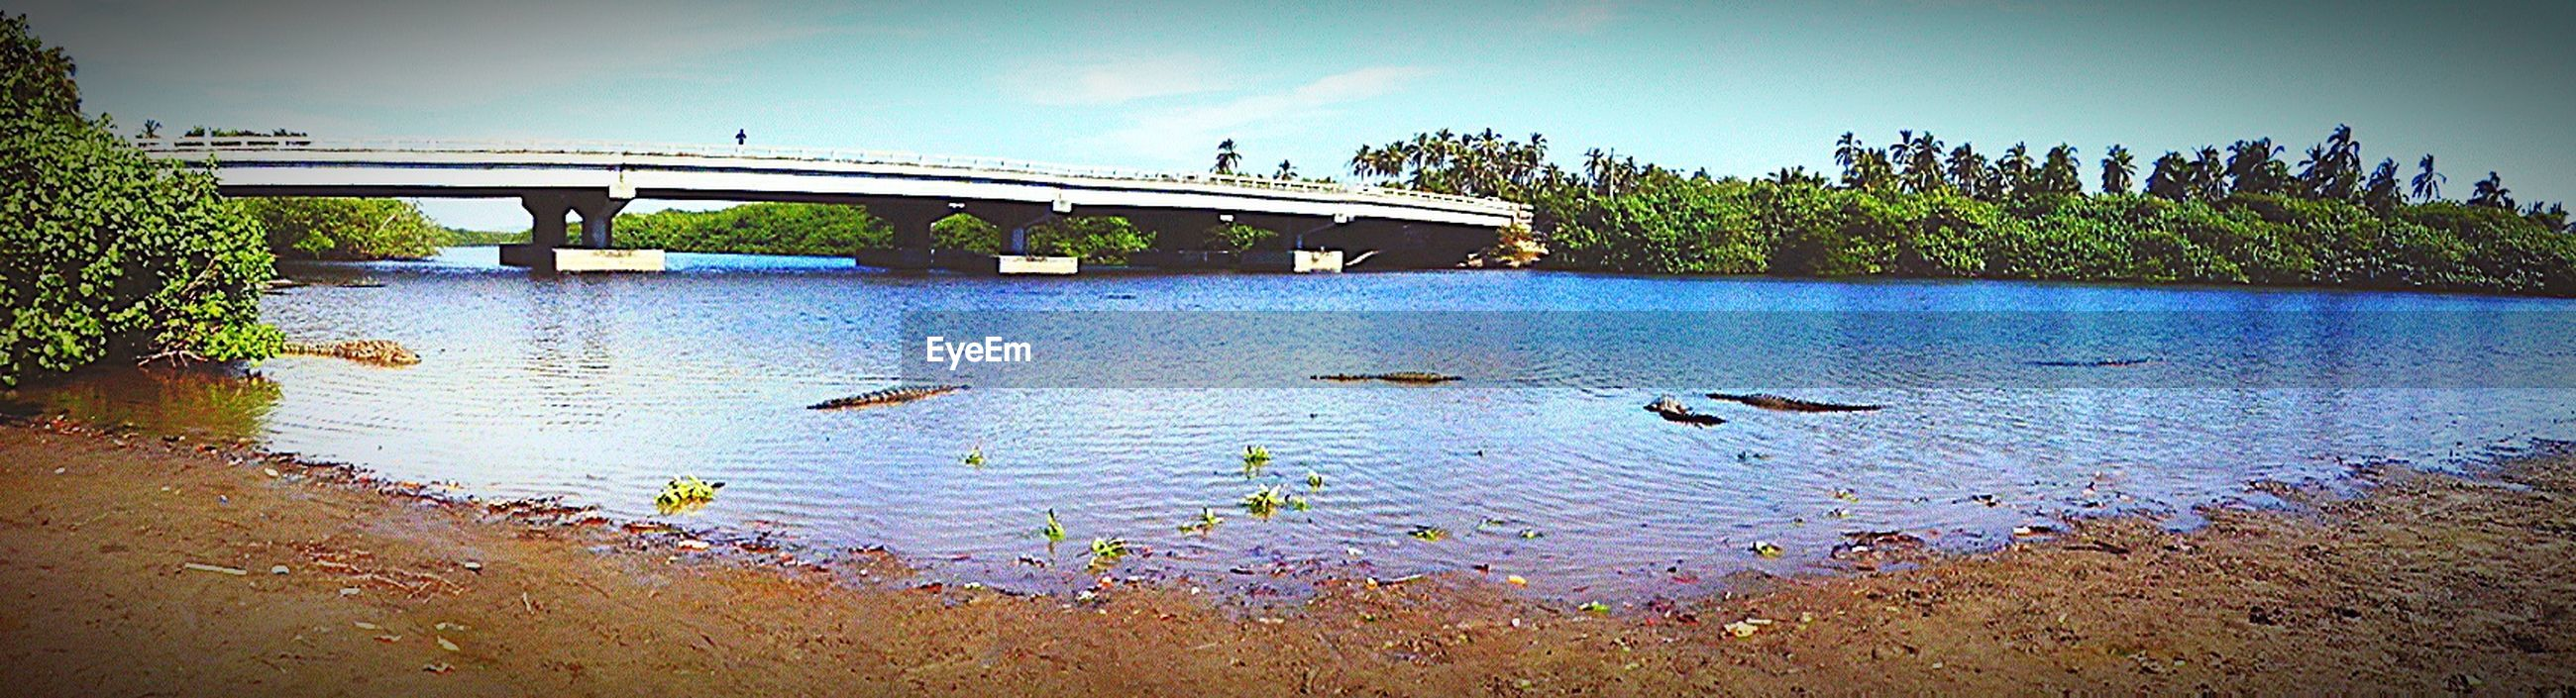 water, bird, animal themes, animals in the wild, wildlife, tree, built structure, river, bridge - man made structure, reflection, sky, architecture, connection, nature, lake, blue, one animal, plant, tranquility, duck